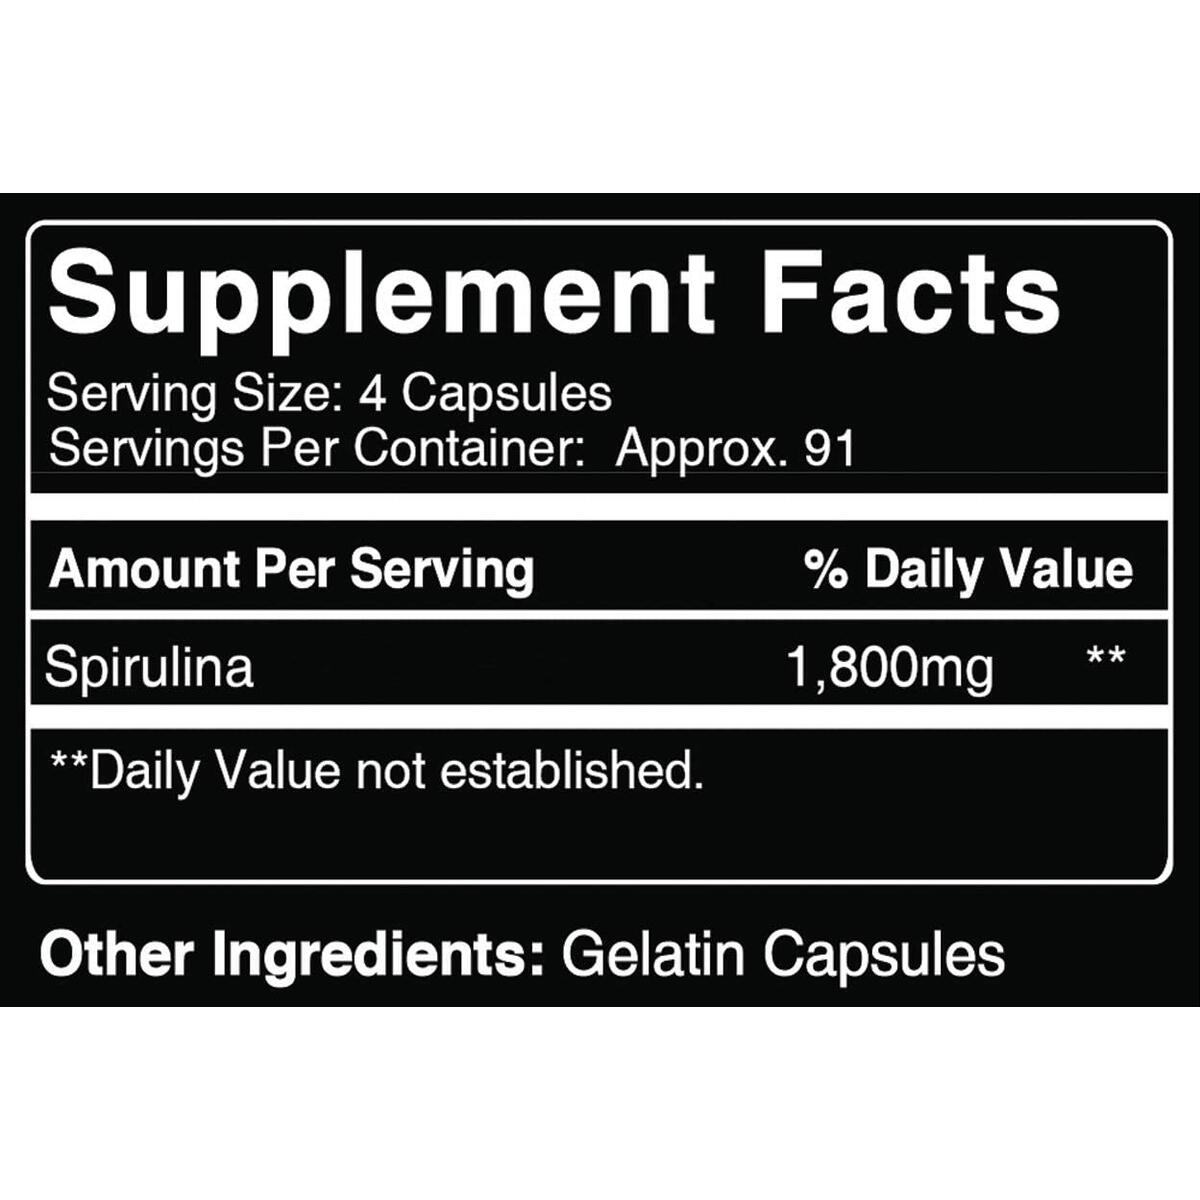 Pure Natural Spirulina, 365 Capsules, 3 Month Supply, No Magnesium or Rice Fillers, Made in The USA, Non-GMO Superfood, High Quality & Gluten-Free, 1800mg with No Additives